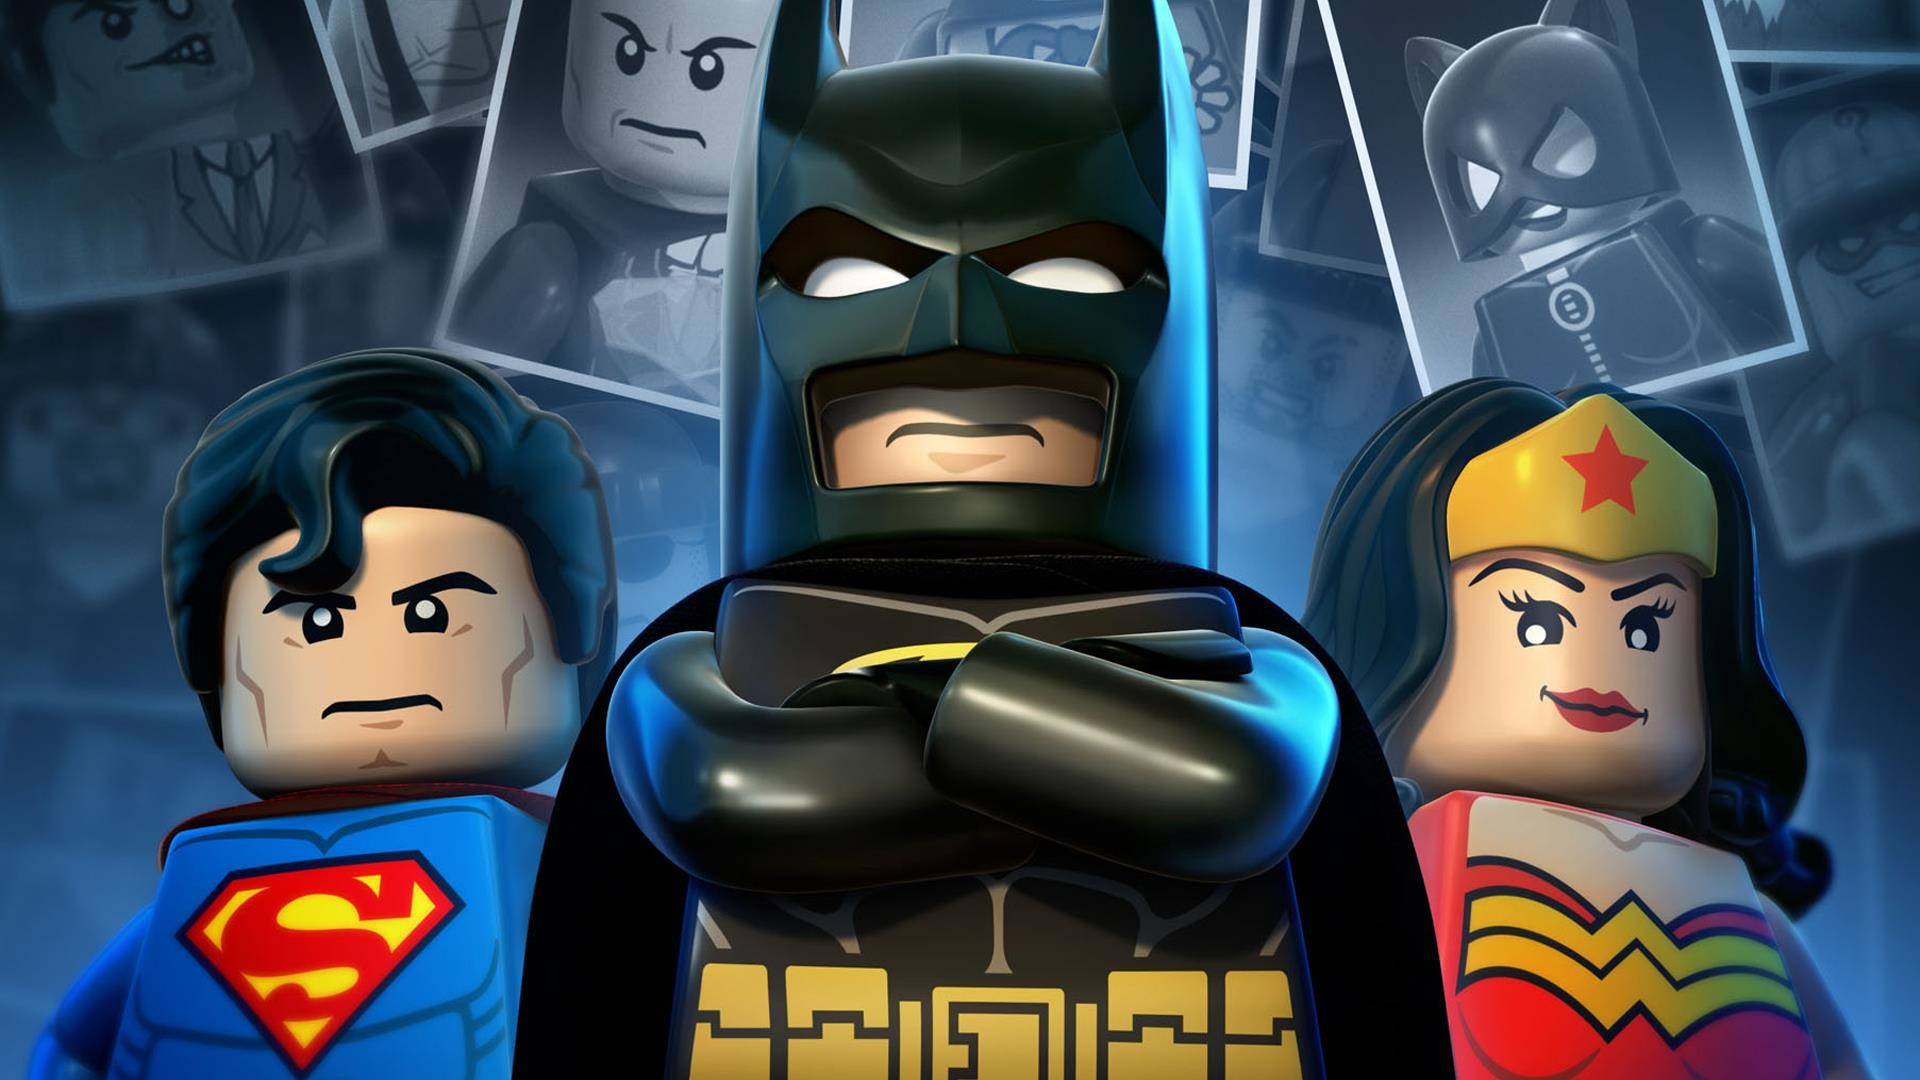 1920x1080 Video Game - LEGO Batman 2: DC Super Heroes Wallpaper